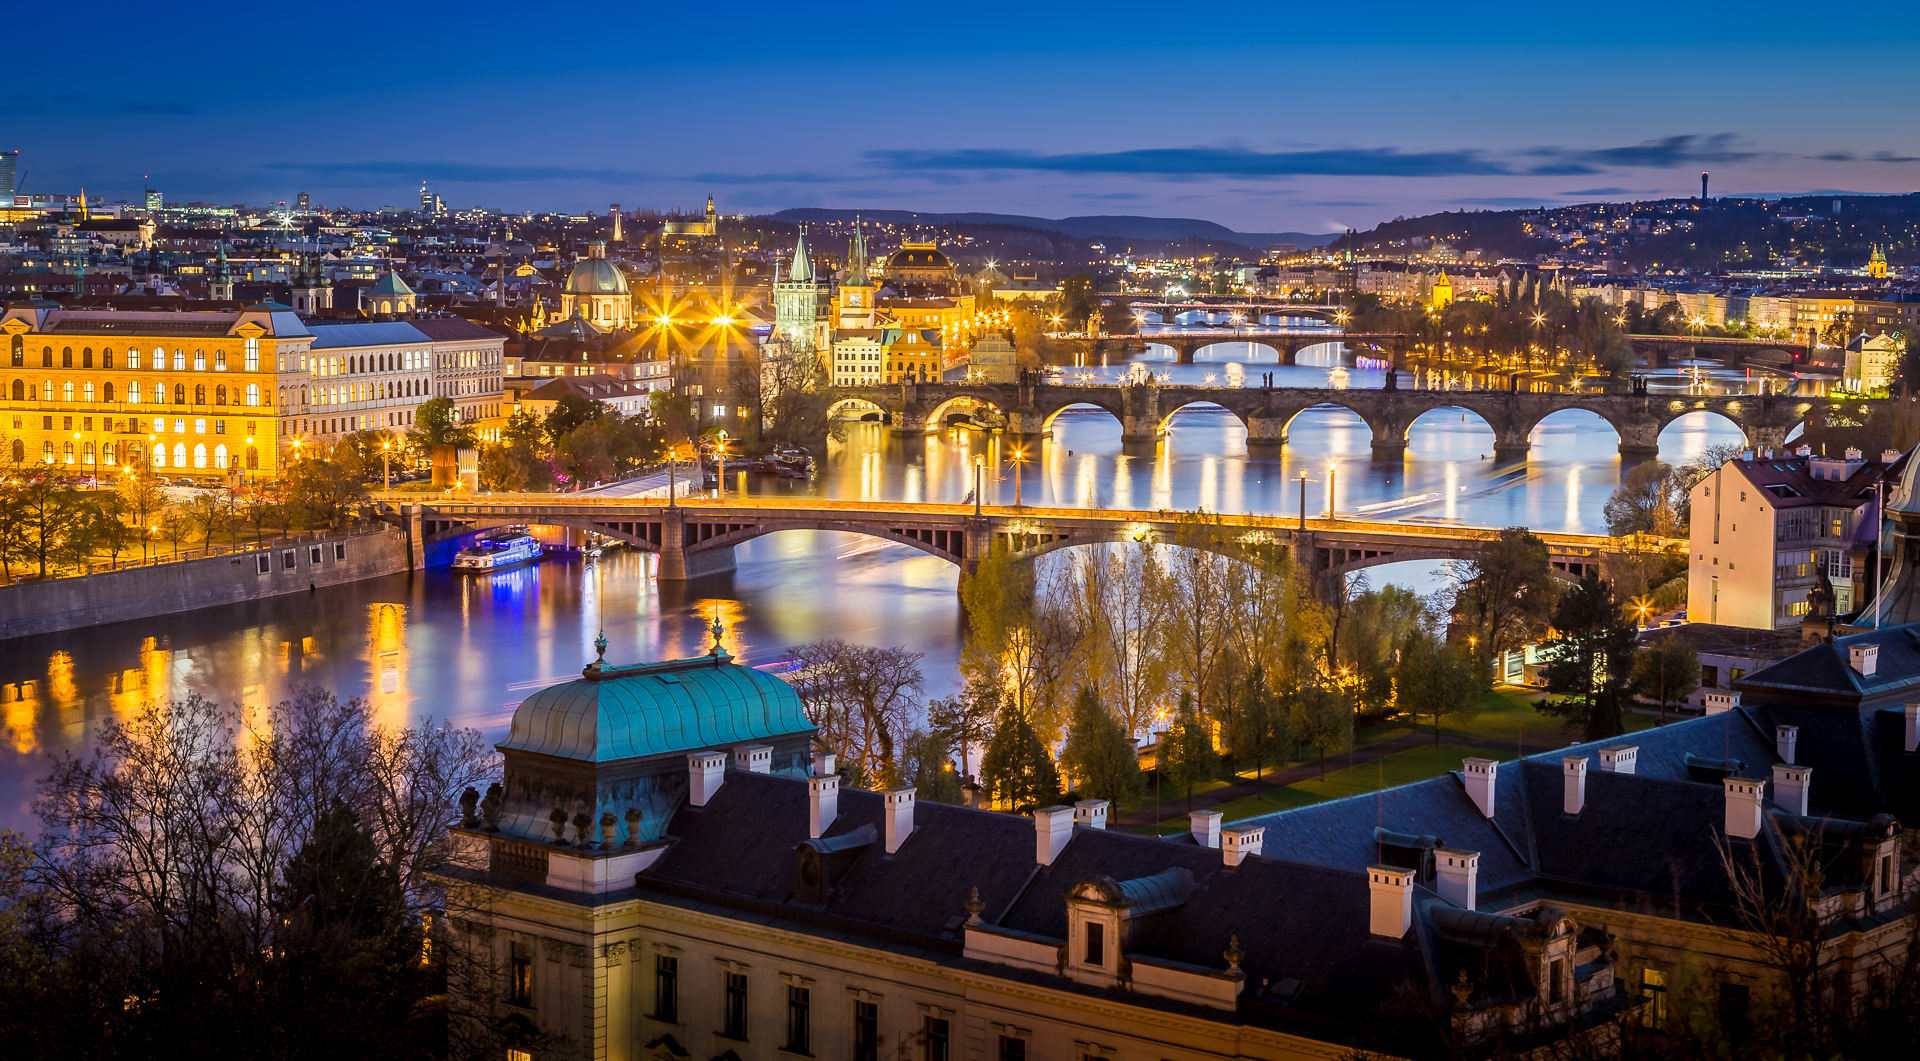 Prag by night